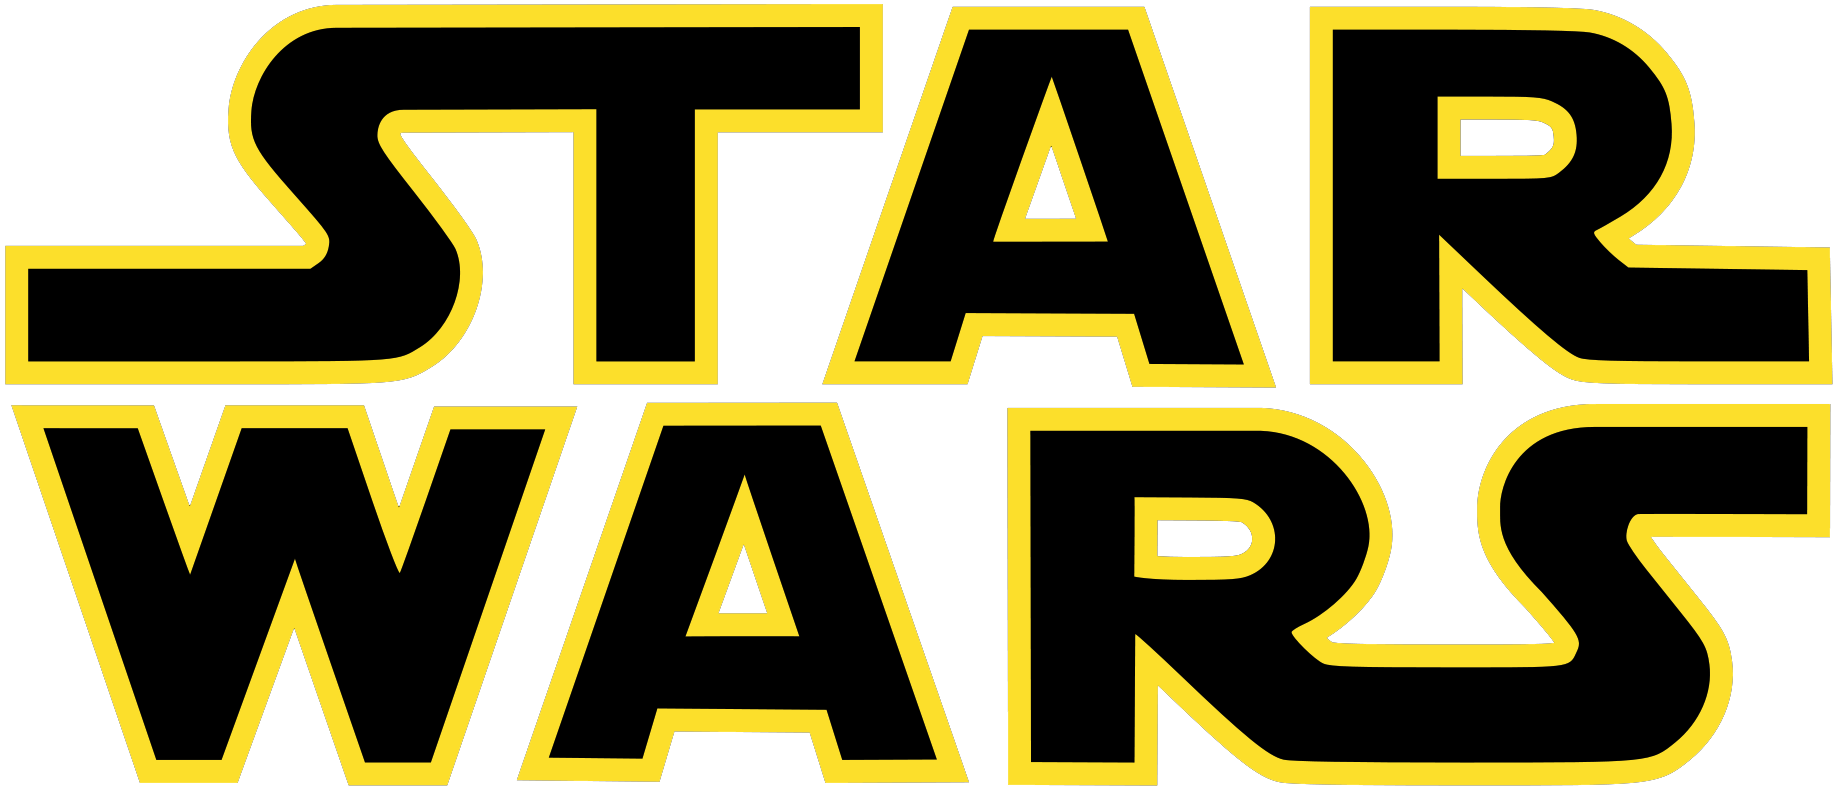 Star wars trilogy clipart png transparent stock Star Wars | Disney Wiki | FANDOM powered by Wikia png transparent stock